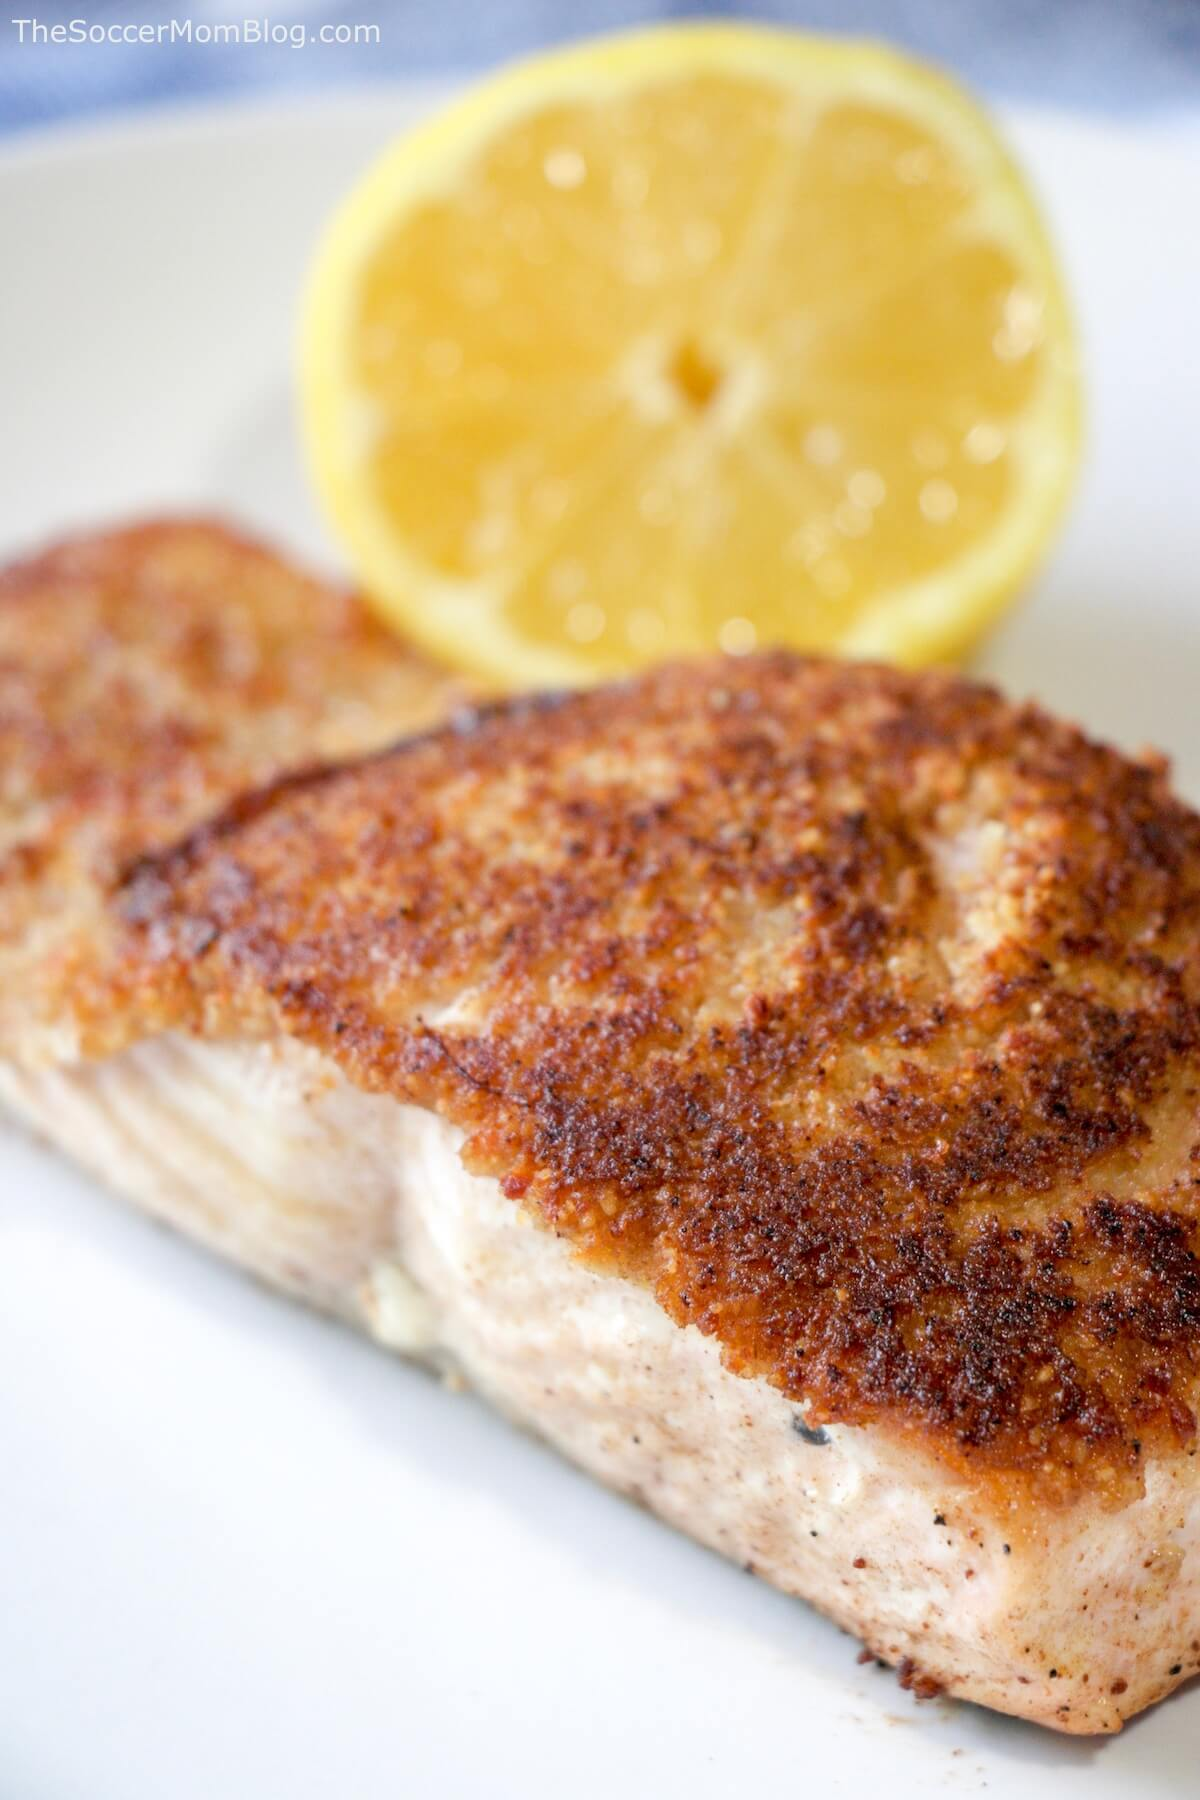 Delicious, nutritious, and ready in 30 minutes or less! This restaurant-quality Walnut Crusted Salmon is an easy meal perfect for busy weeknights and special occasions alike!